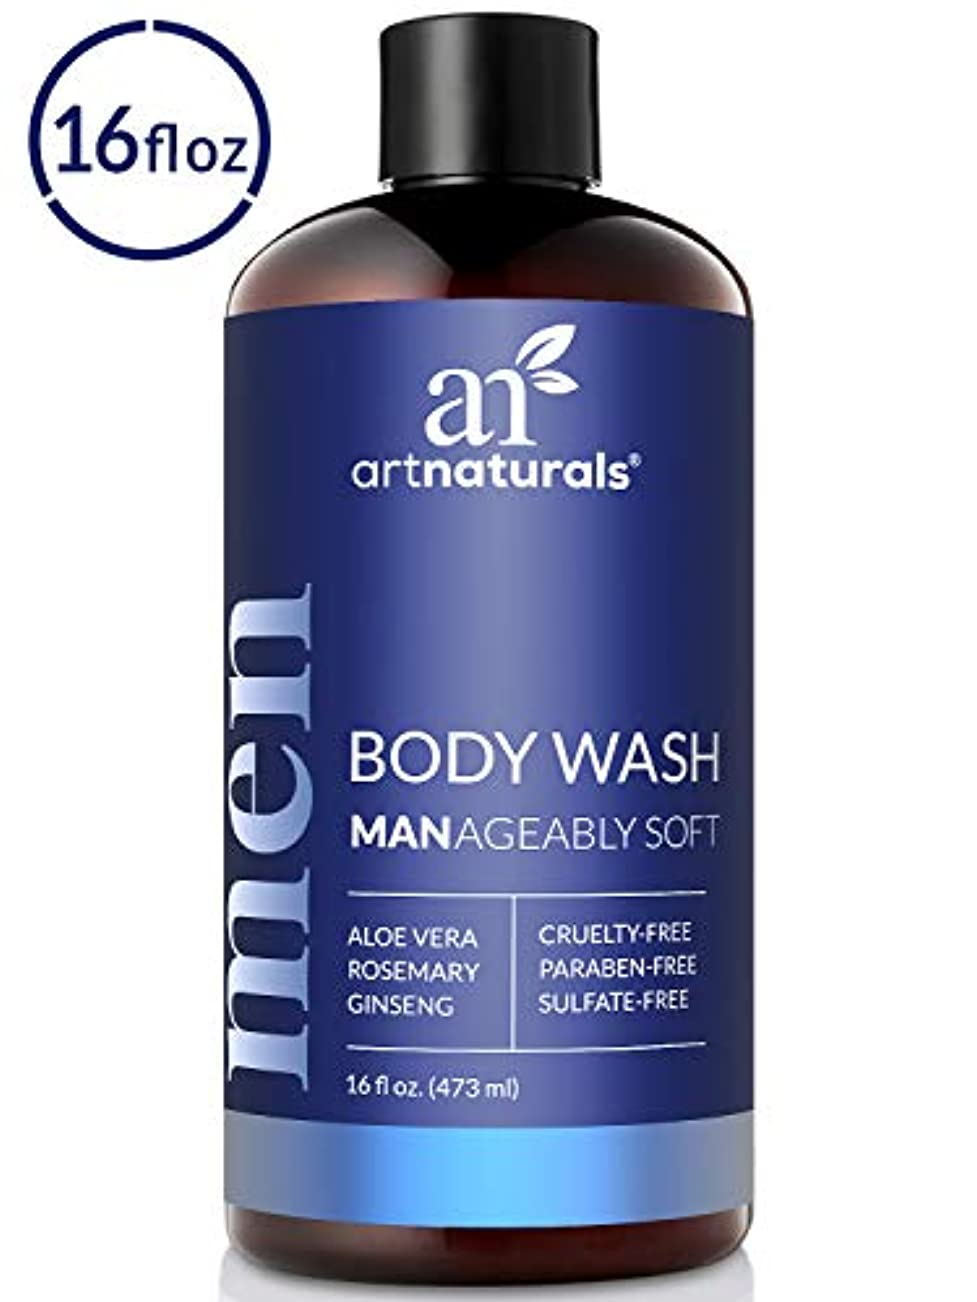 ArtNaturals Men's Natural Body Wash – (16 Fl Oz / 473ml) – Shower Gel that Cleanses, Refreshes and Deodorizes...